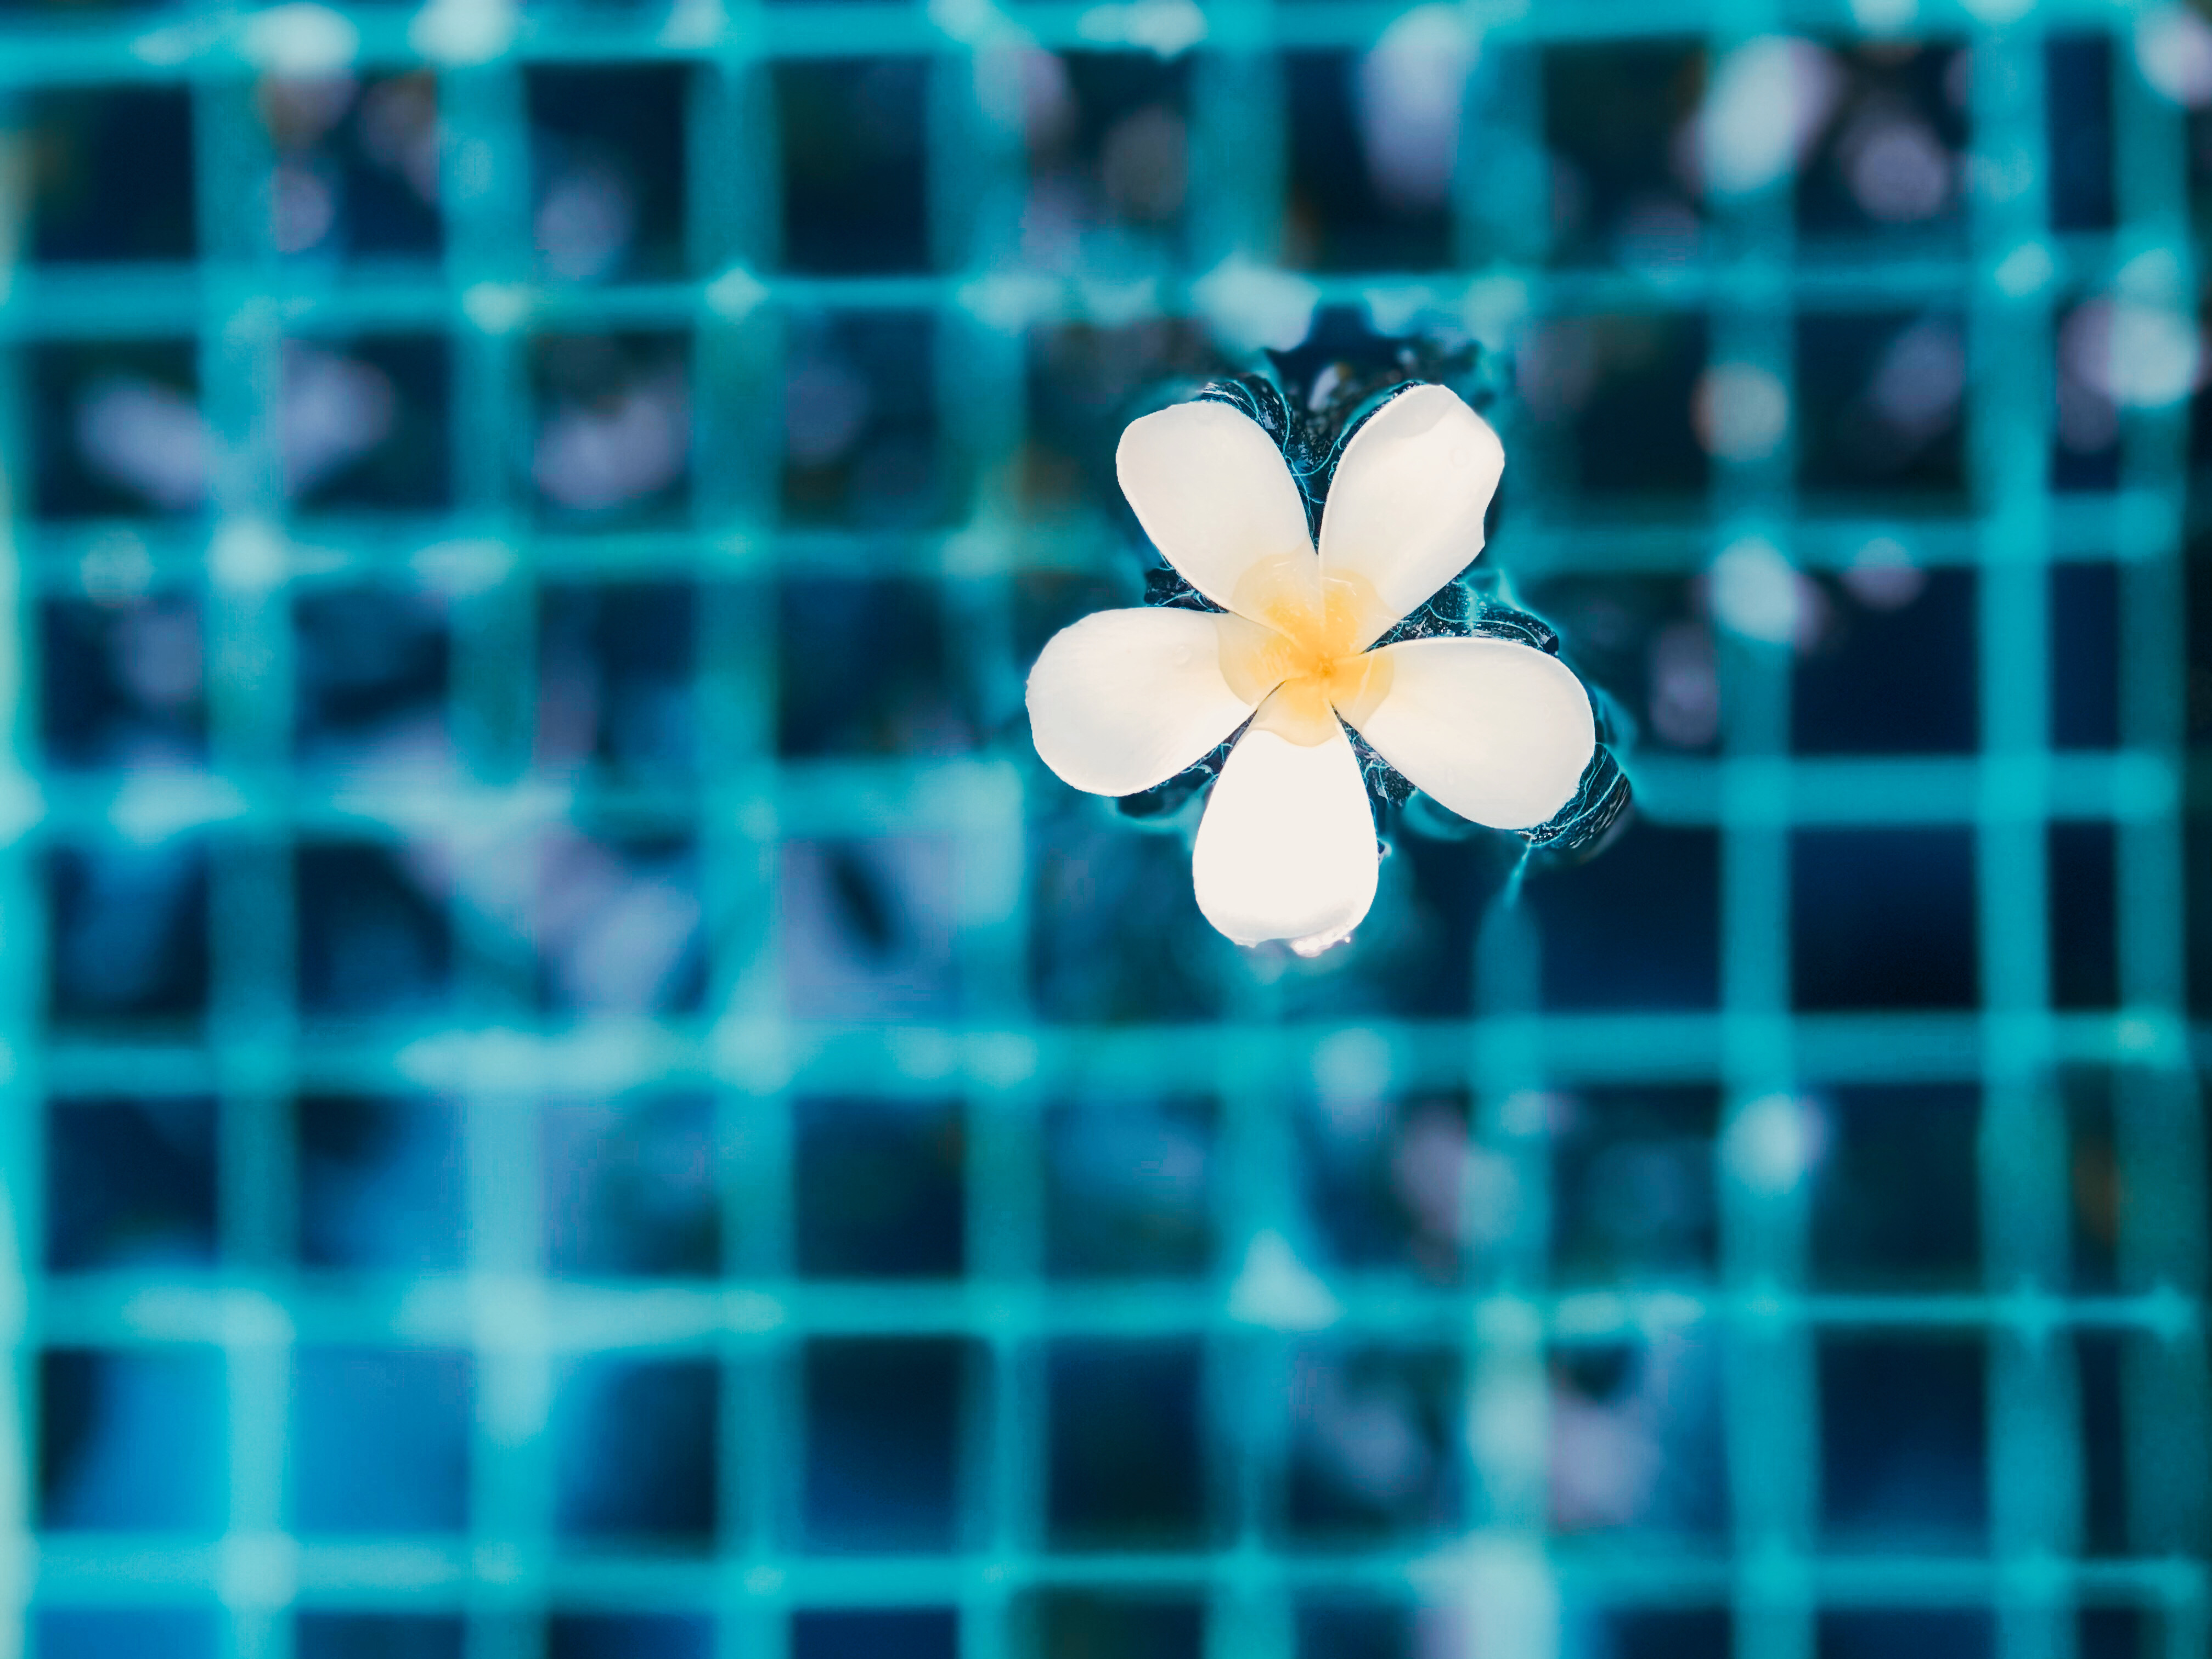 Flower in the swimming pool with nature view